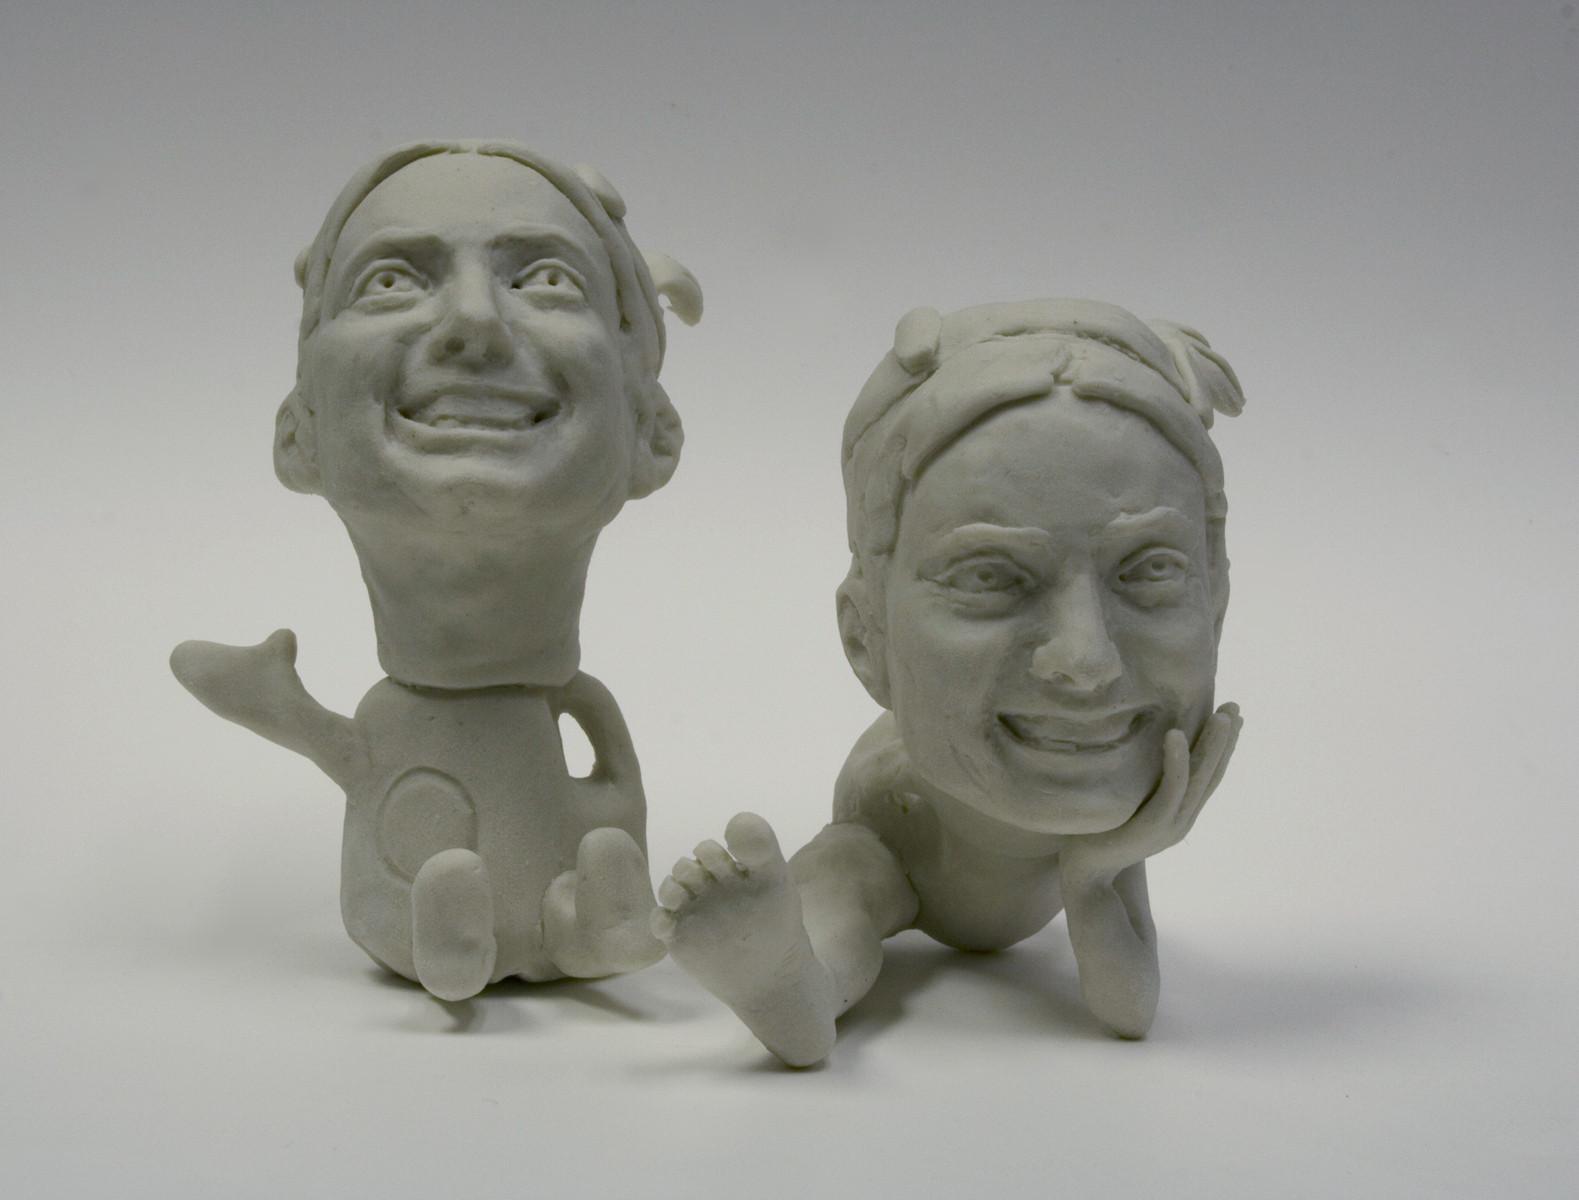 """Portrait of the Artist as a Commodity, #1.1, 1.2.    unglazed porcelain,3"""" h or less  Spring 2007"""